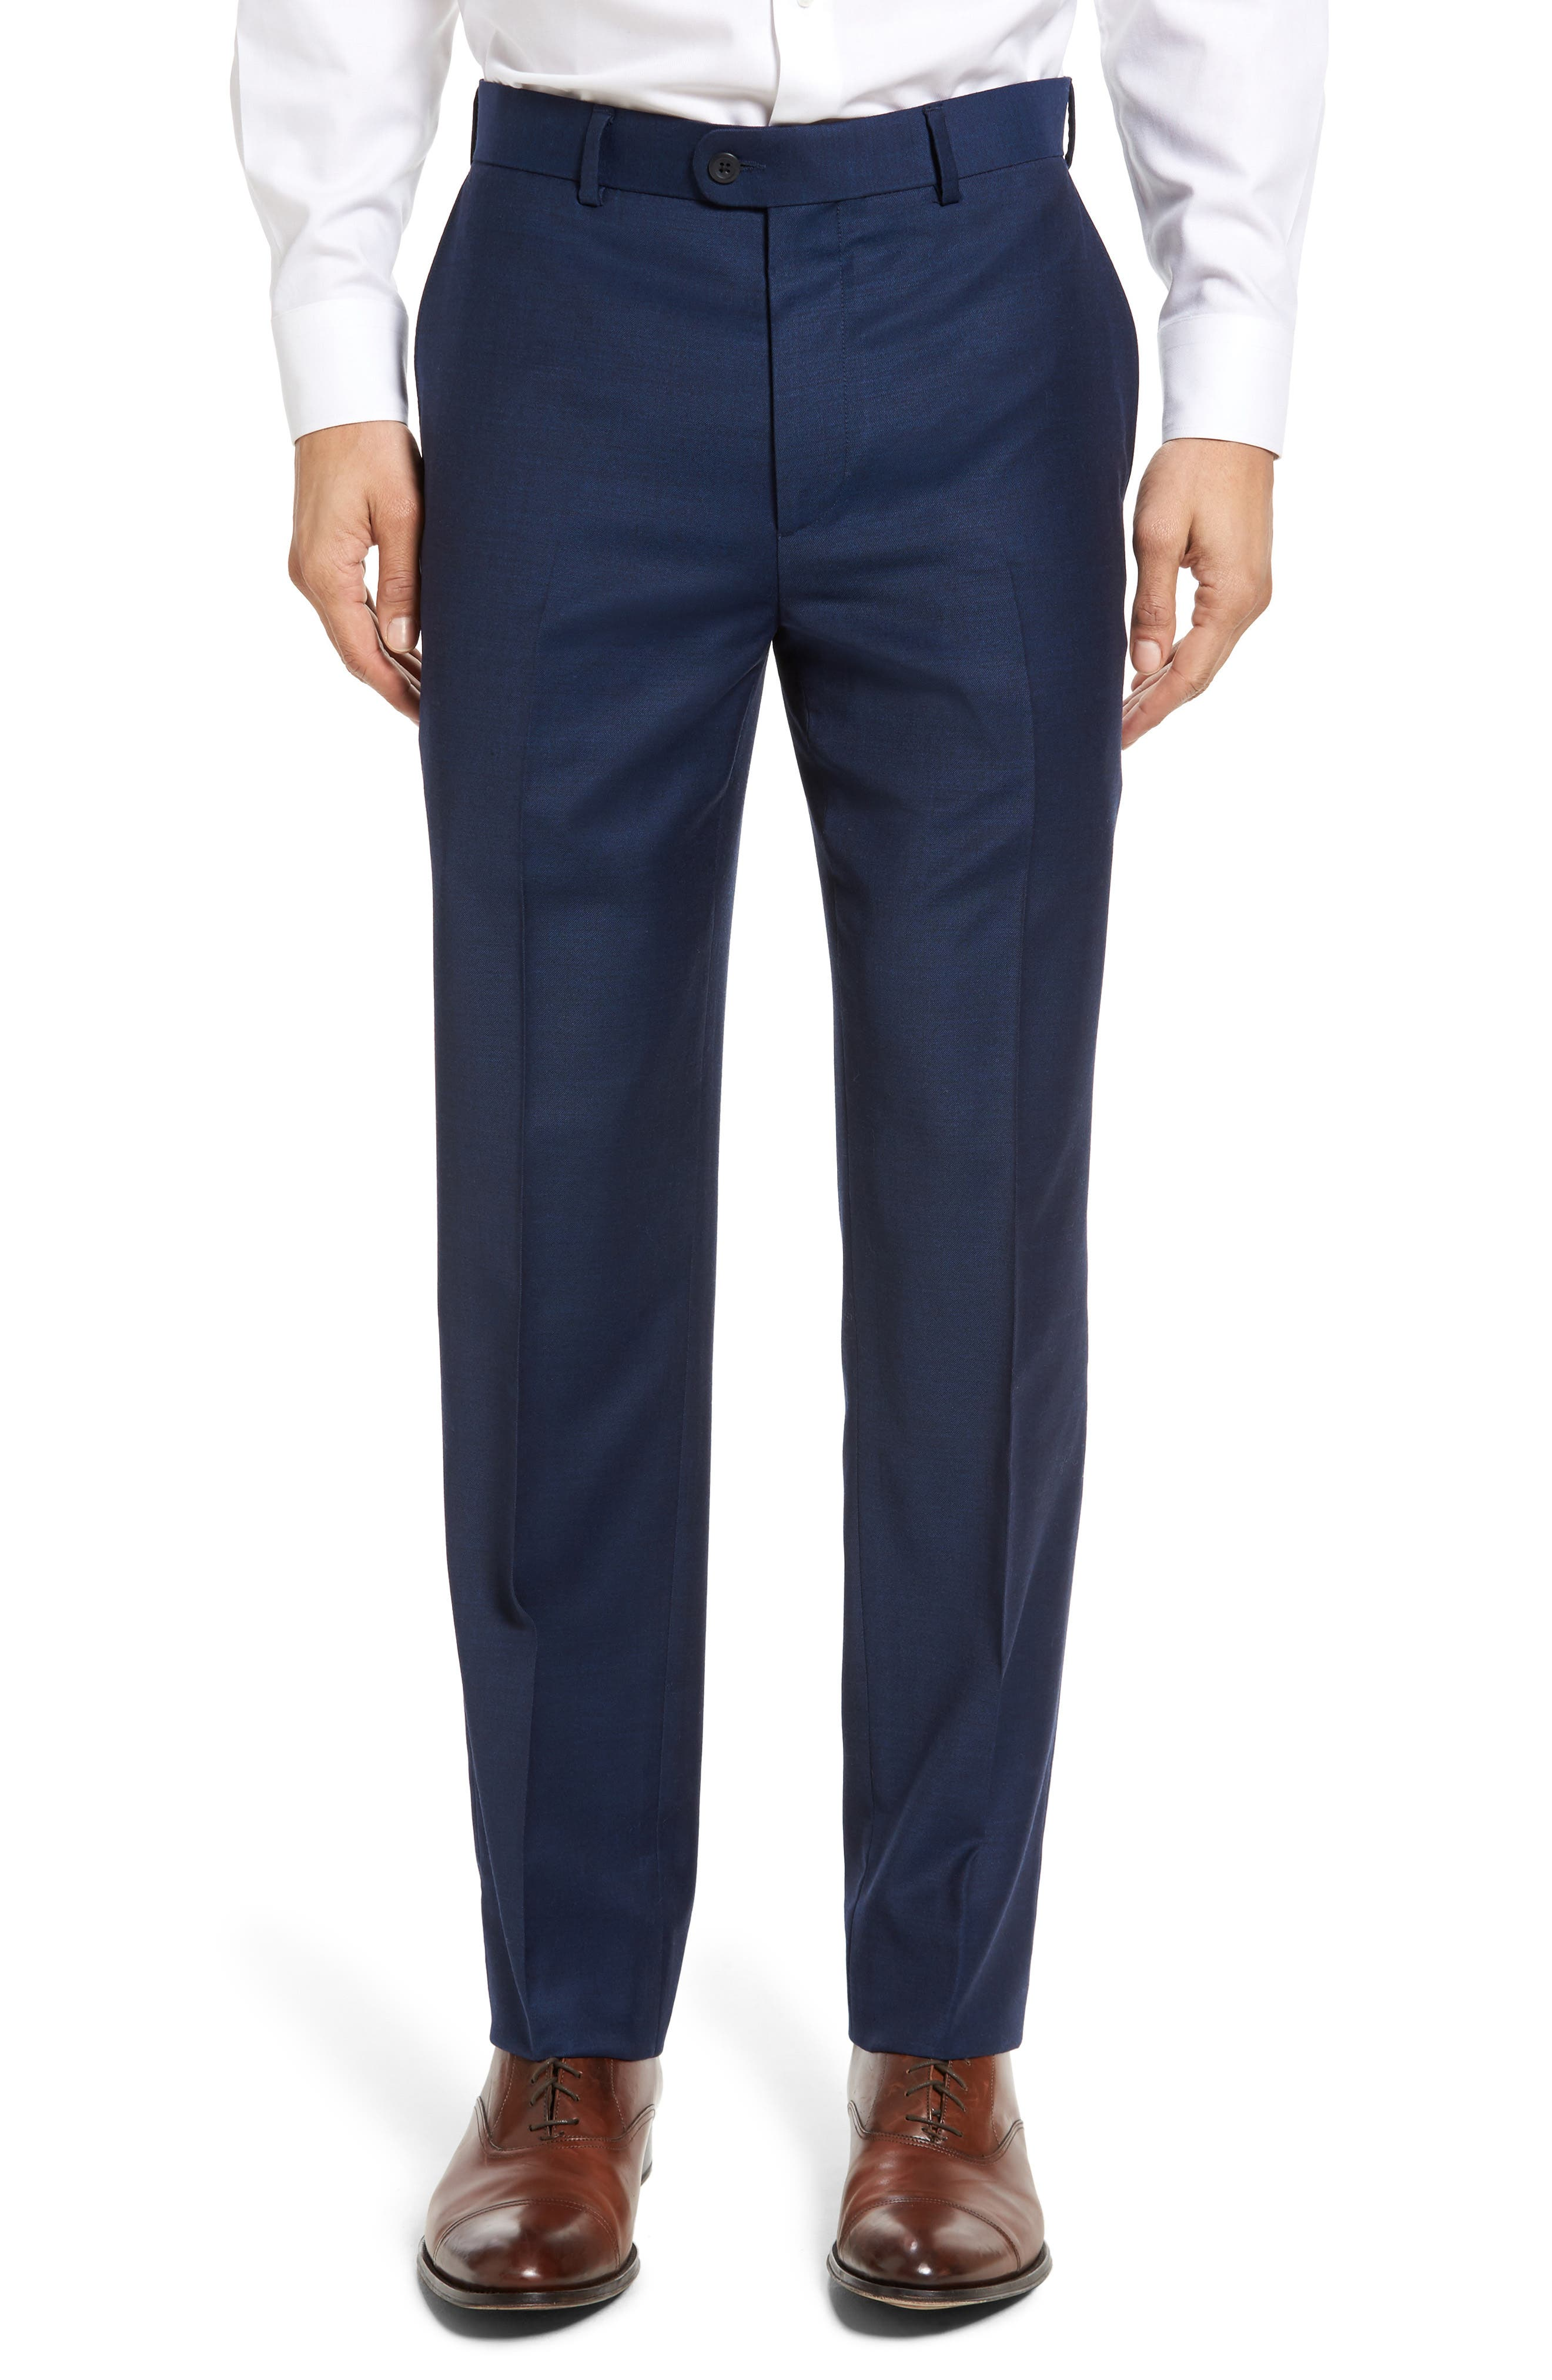 Bensol Gab Trim Fit Flat Front Pants